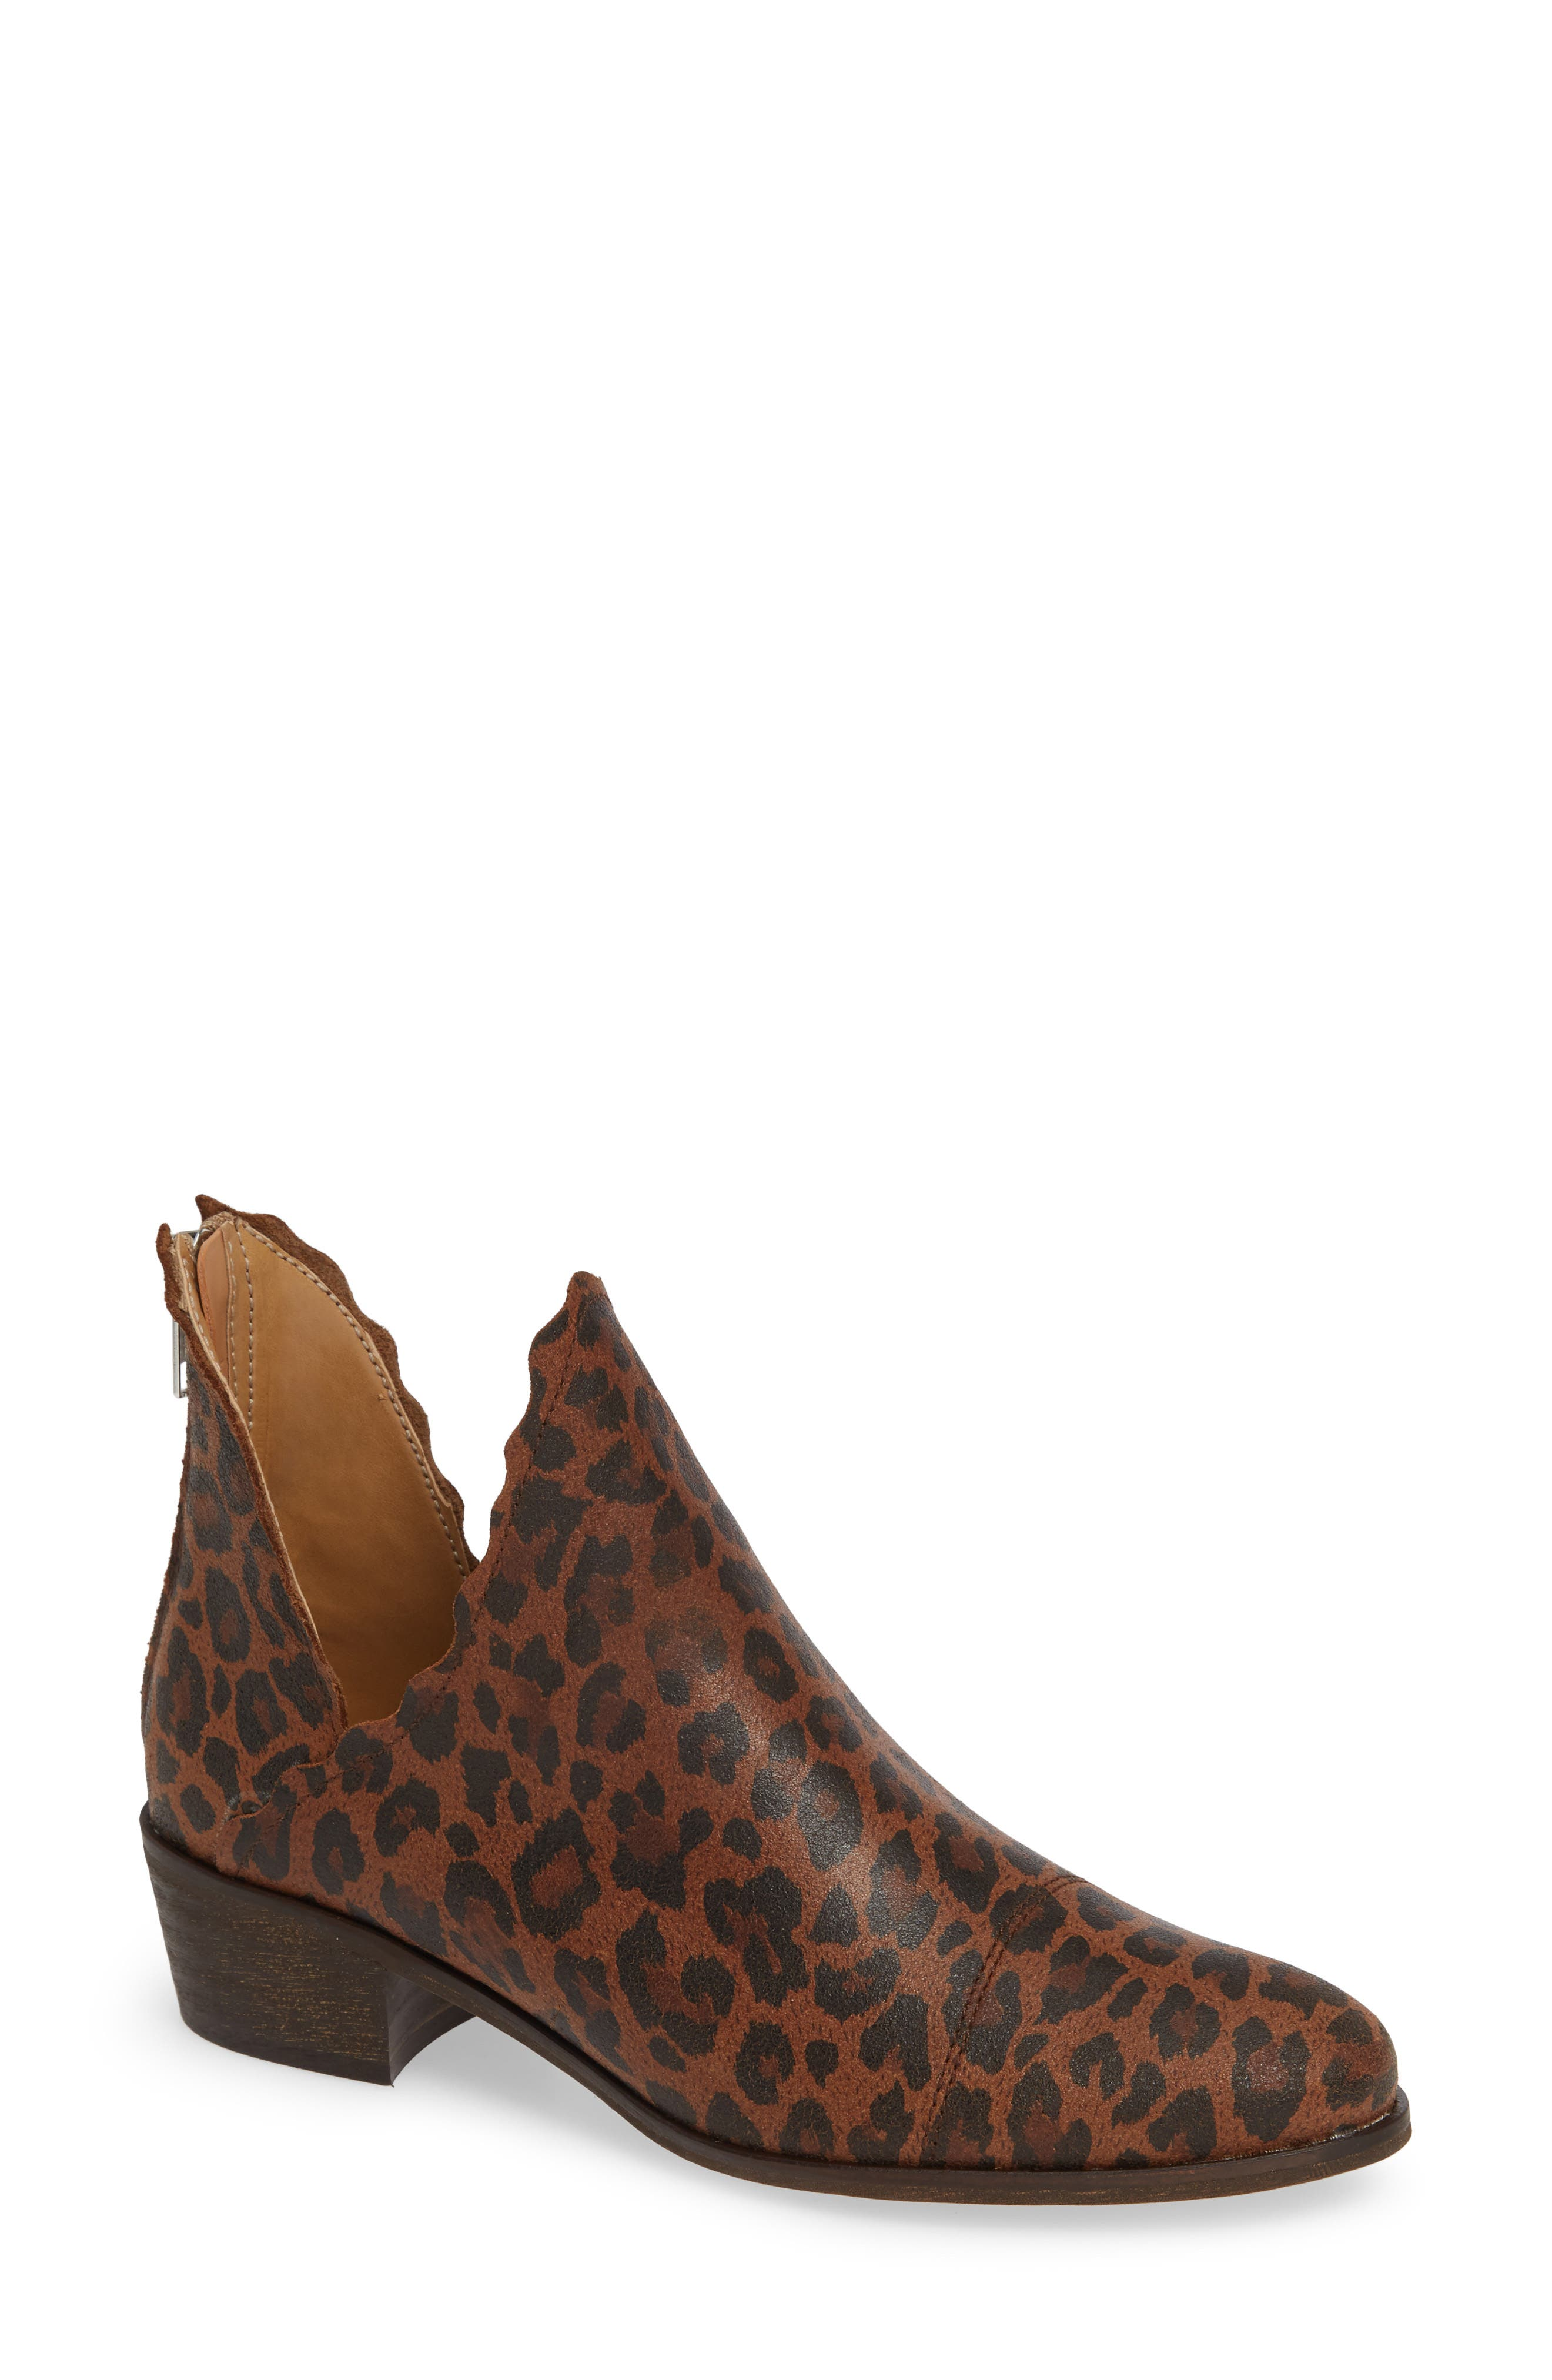 KLUB NICO, Bae Scalloped Bootie, Main thumbnail 1, color, LEOPARD SUEDE